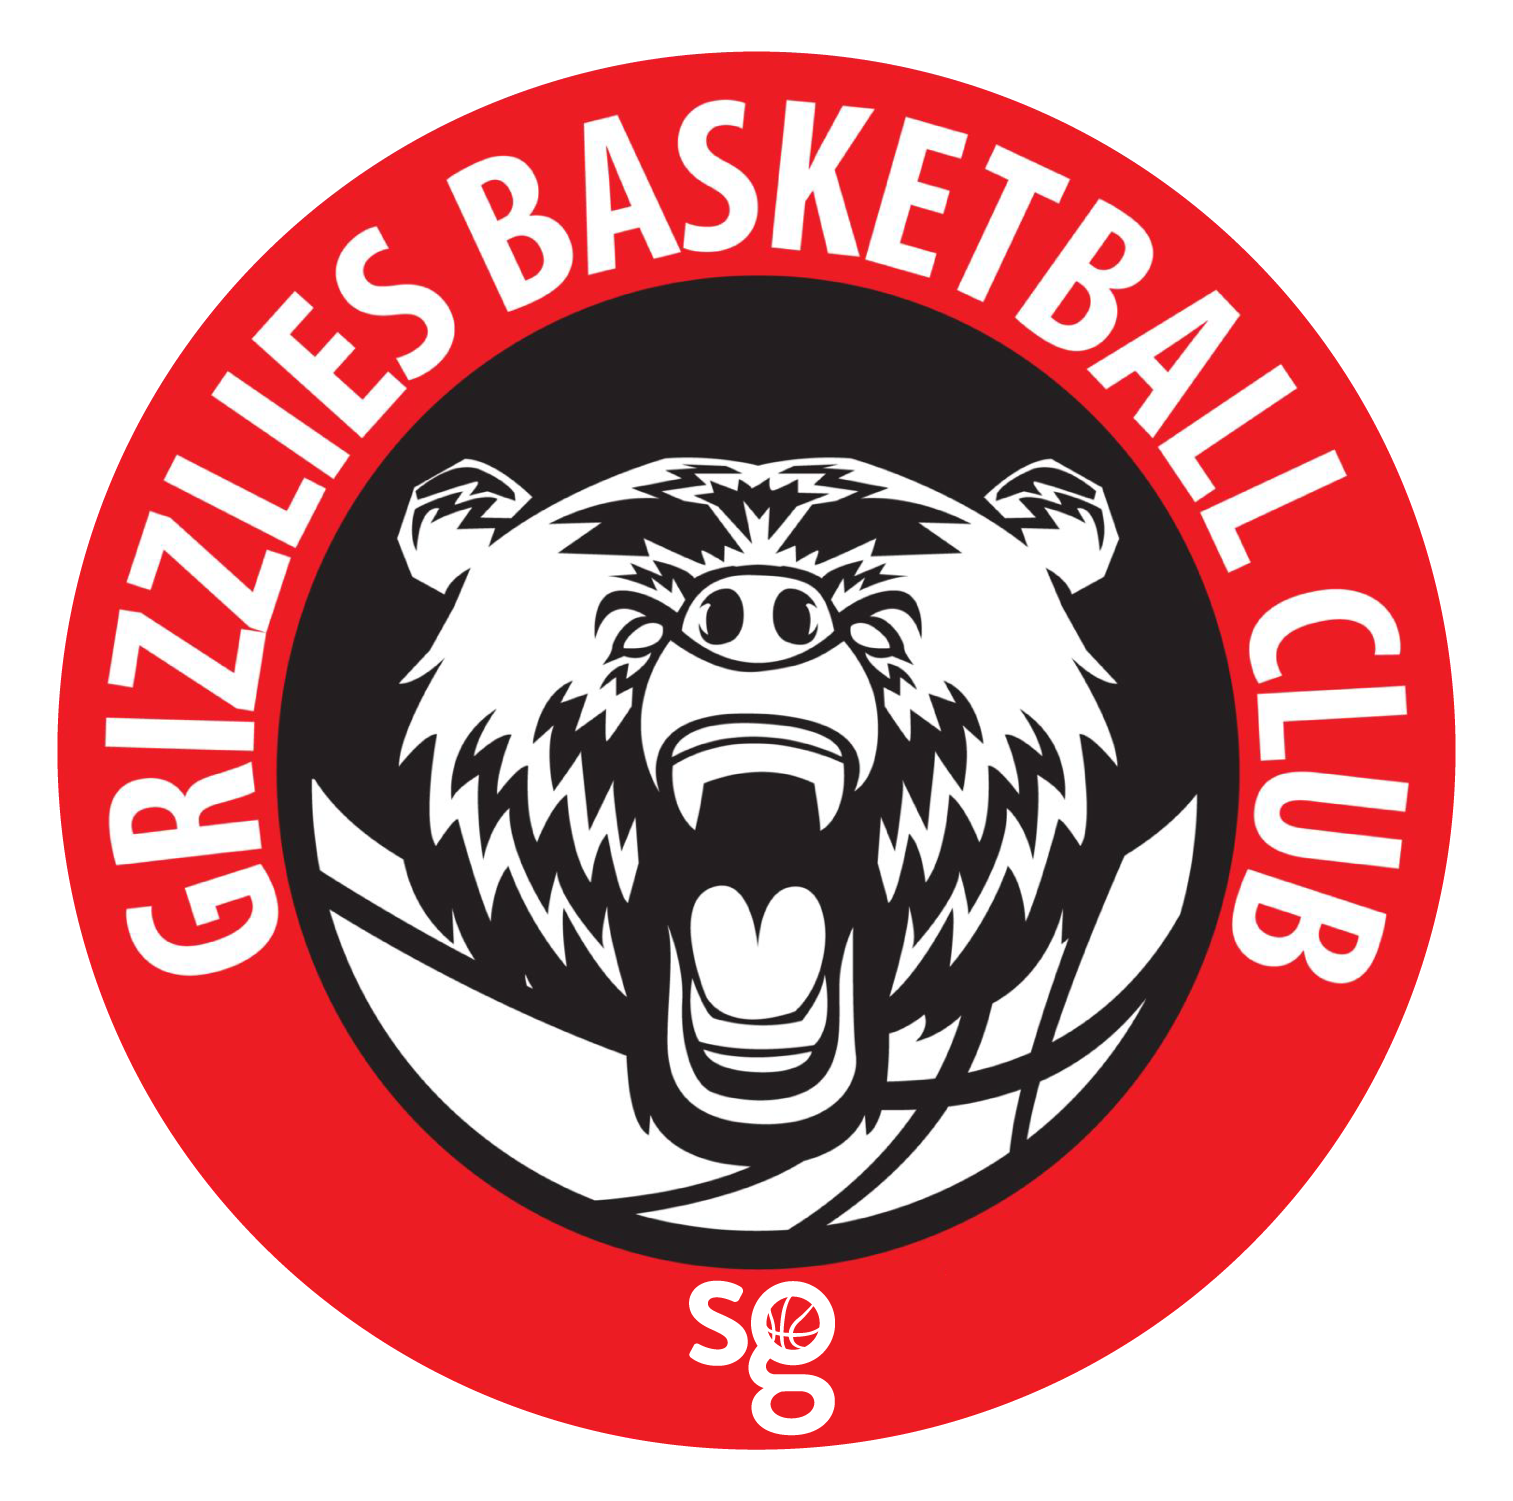 GRIZZLIES BASKETBALL - Grizzlies Basketball Club is based at CIS (Lakeside).... more